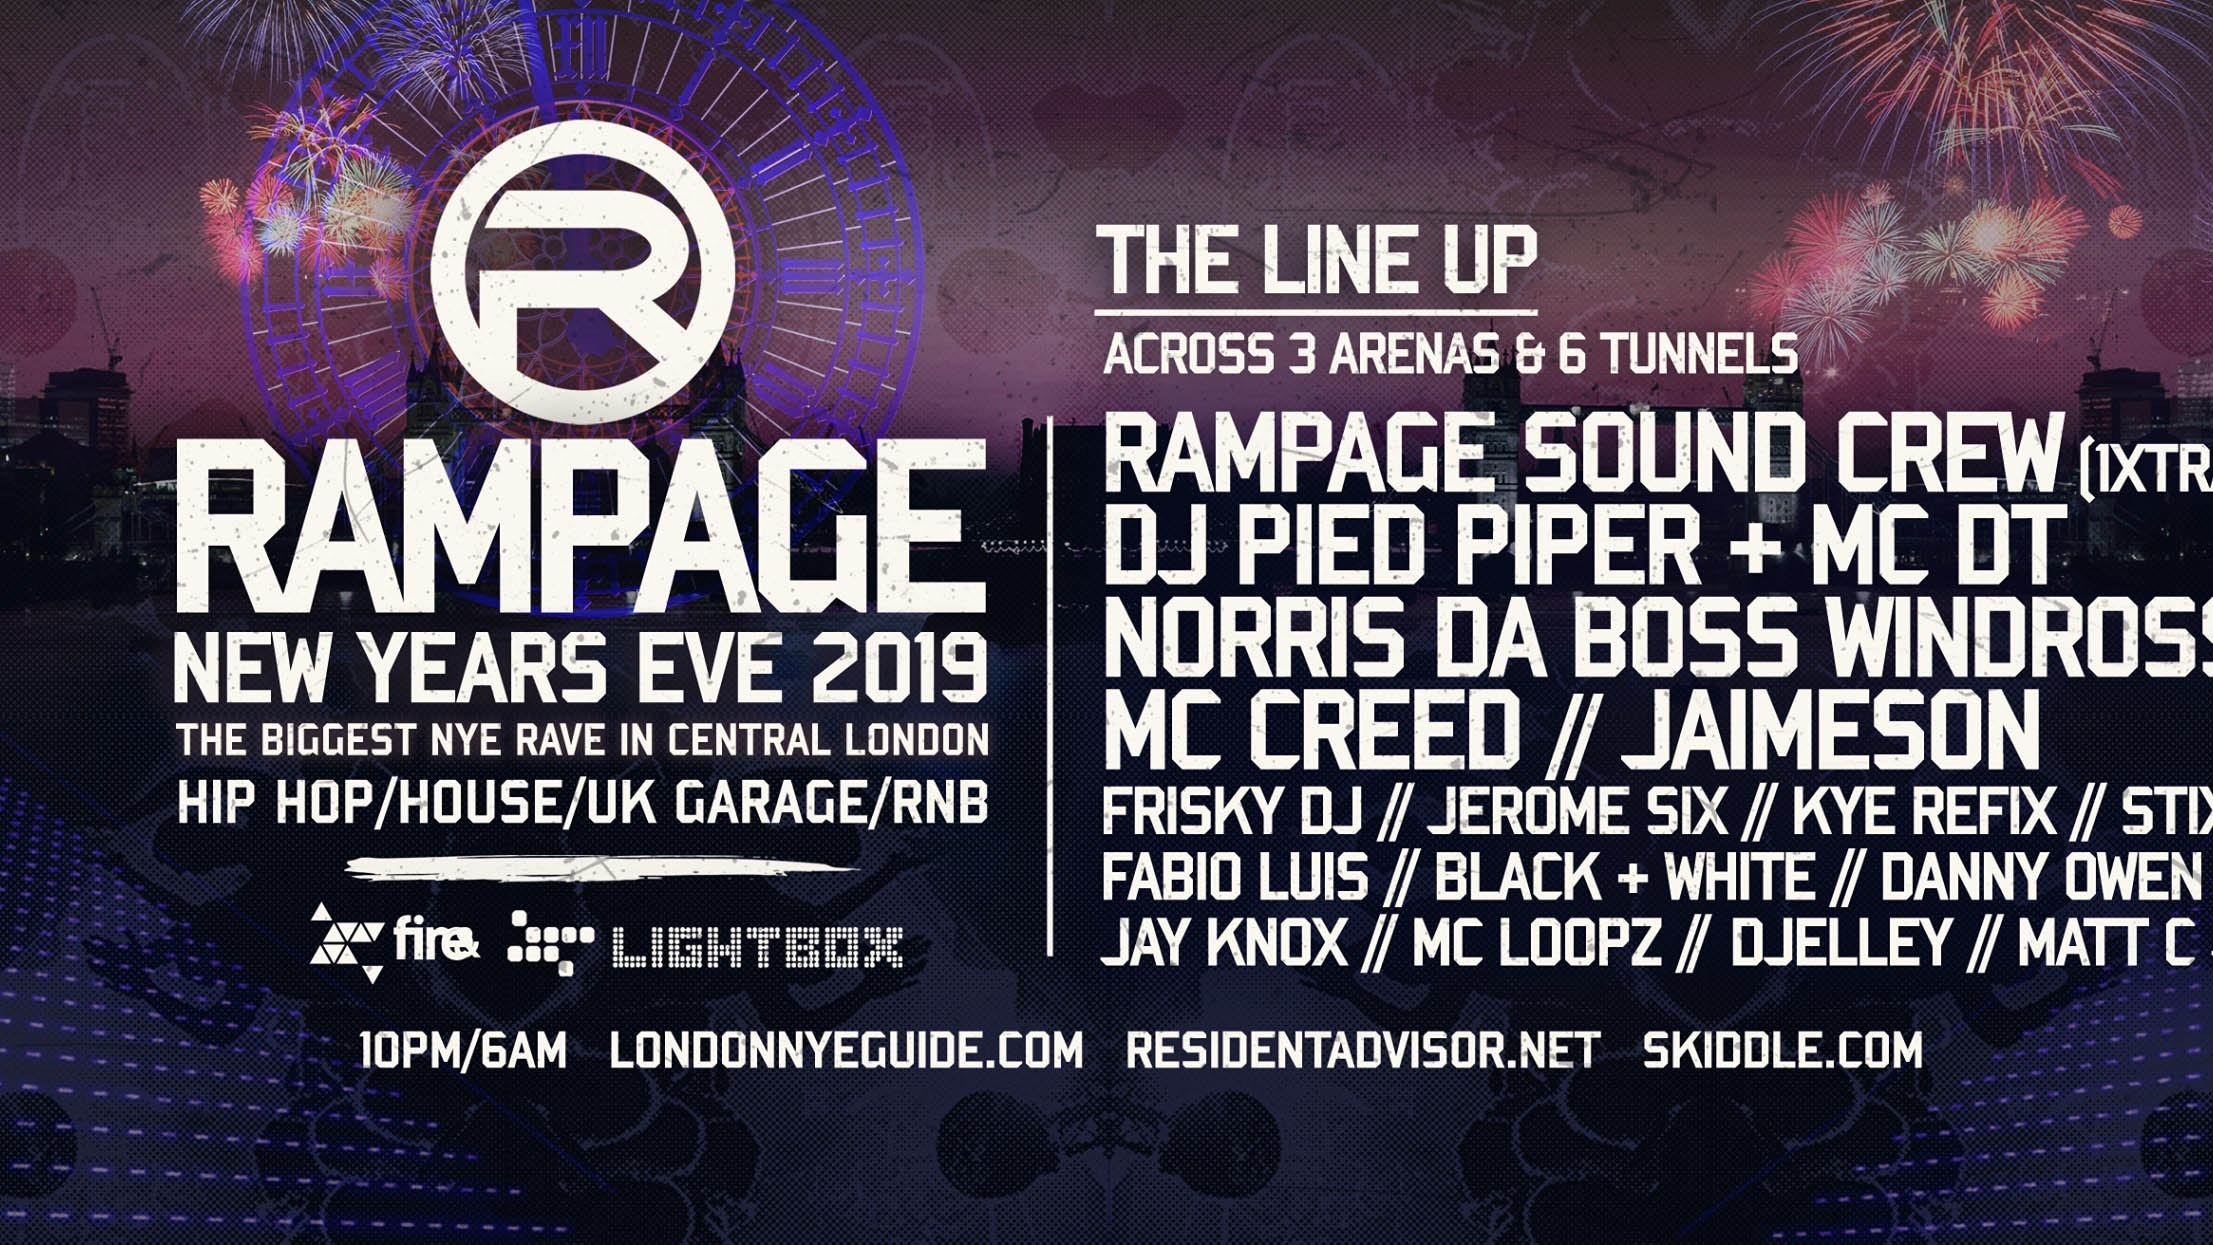 Rampage Sound New Years Eve Rave | Fire & Lightbox